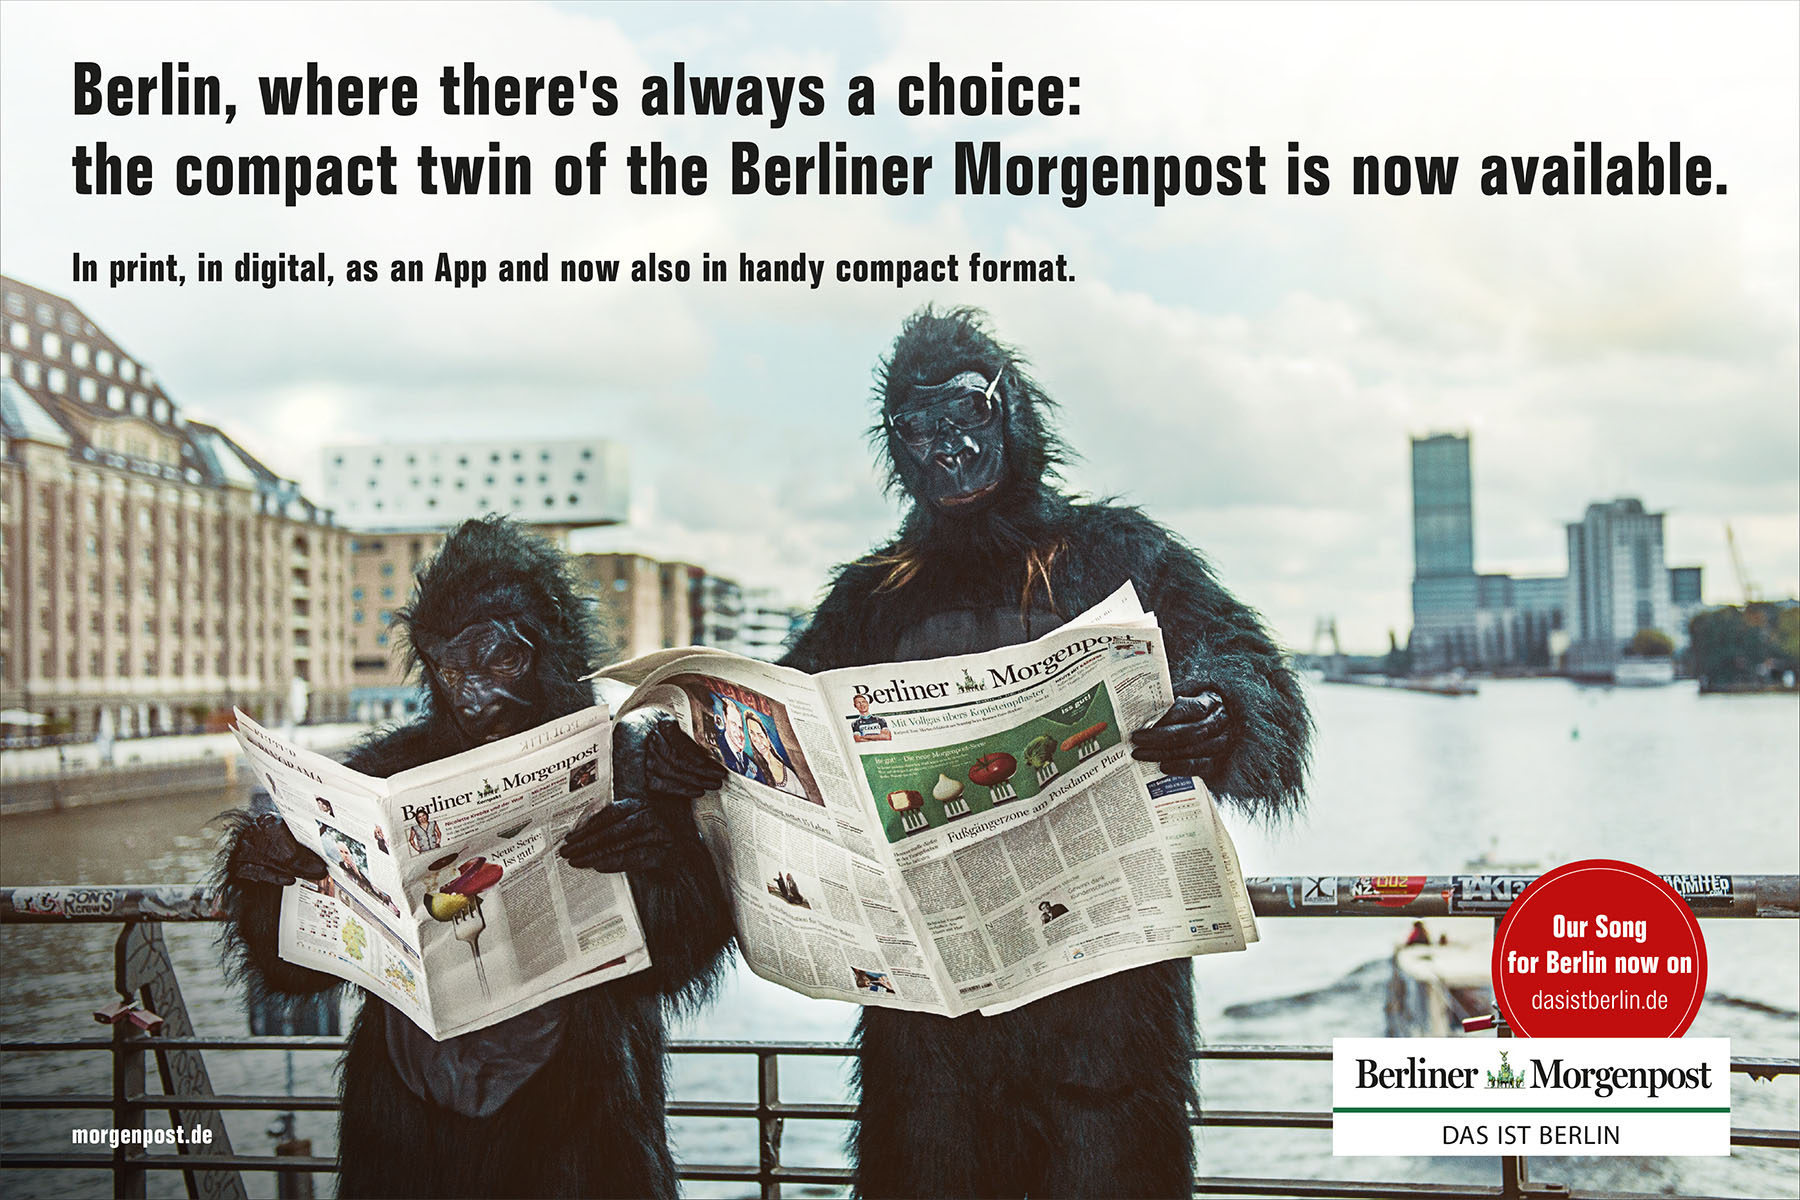 Brand Campaign for the launch of Berliner Morgenpost Compact - Category 1